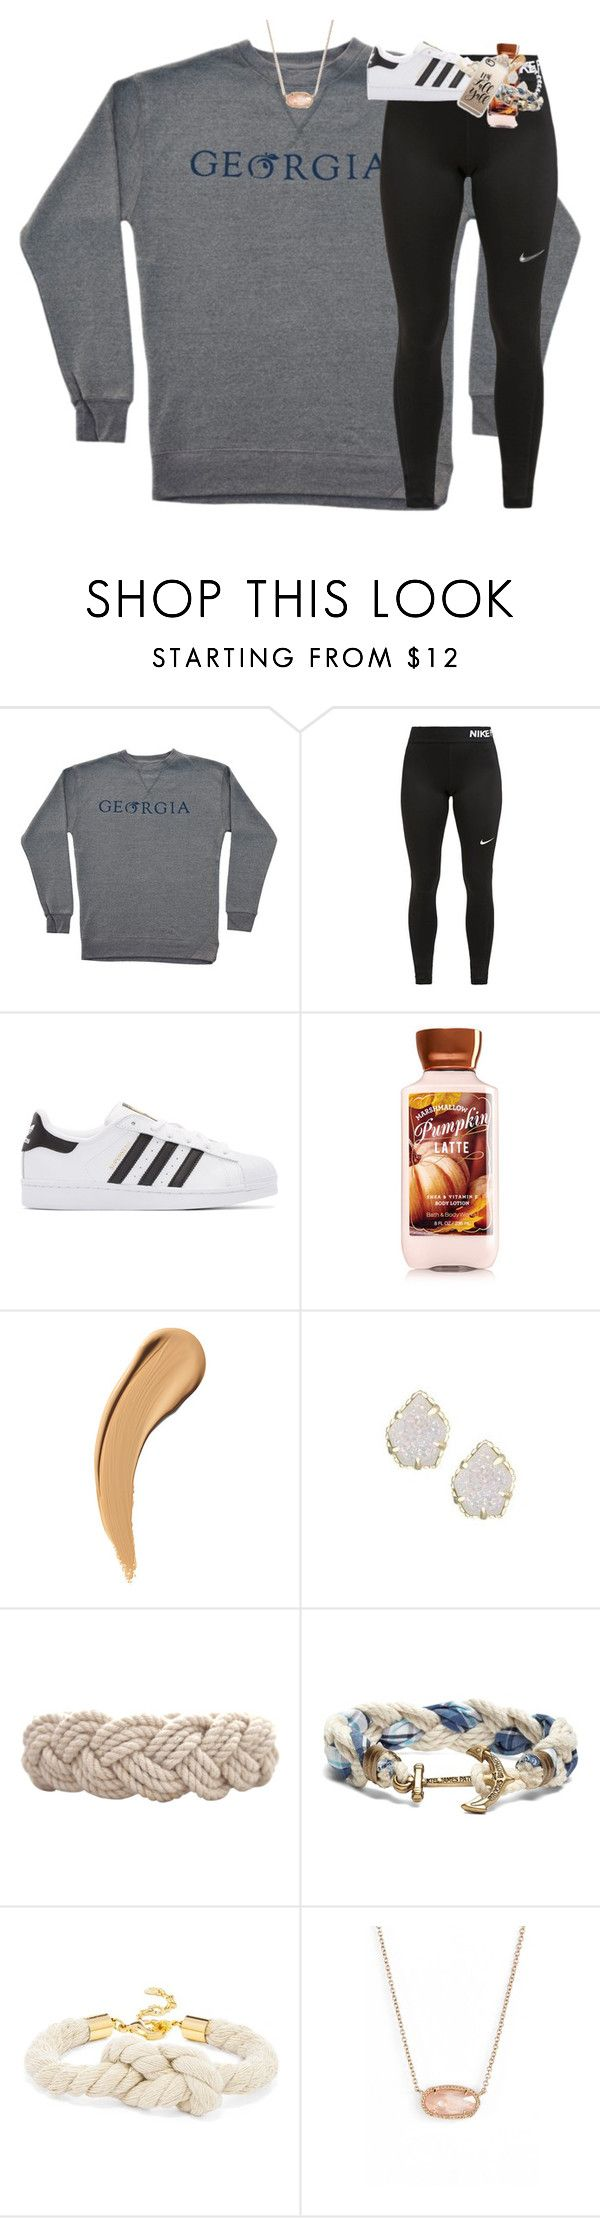 """""""relaxing monday. that's a first!"""" by classynsouthern ❤ liked on Polyvore featuring NIKE, adidas Originals, Kendra Scott, Swell, Brooks Brothers, BaubleBar and Casetify"""